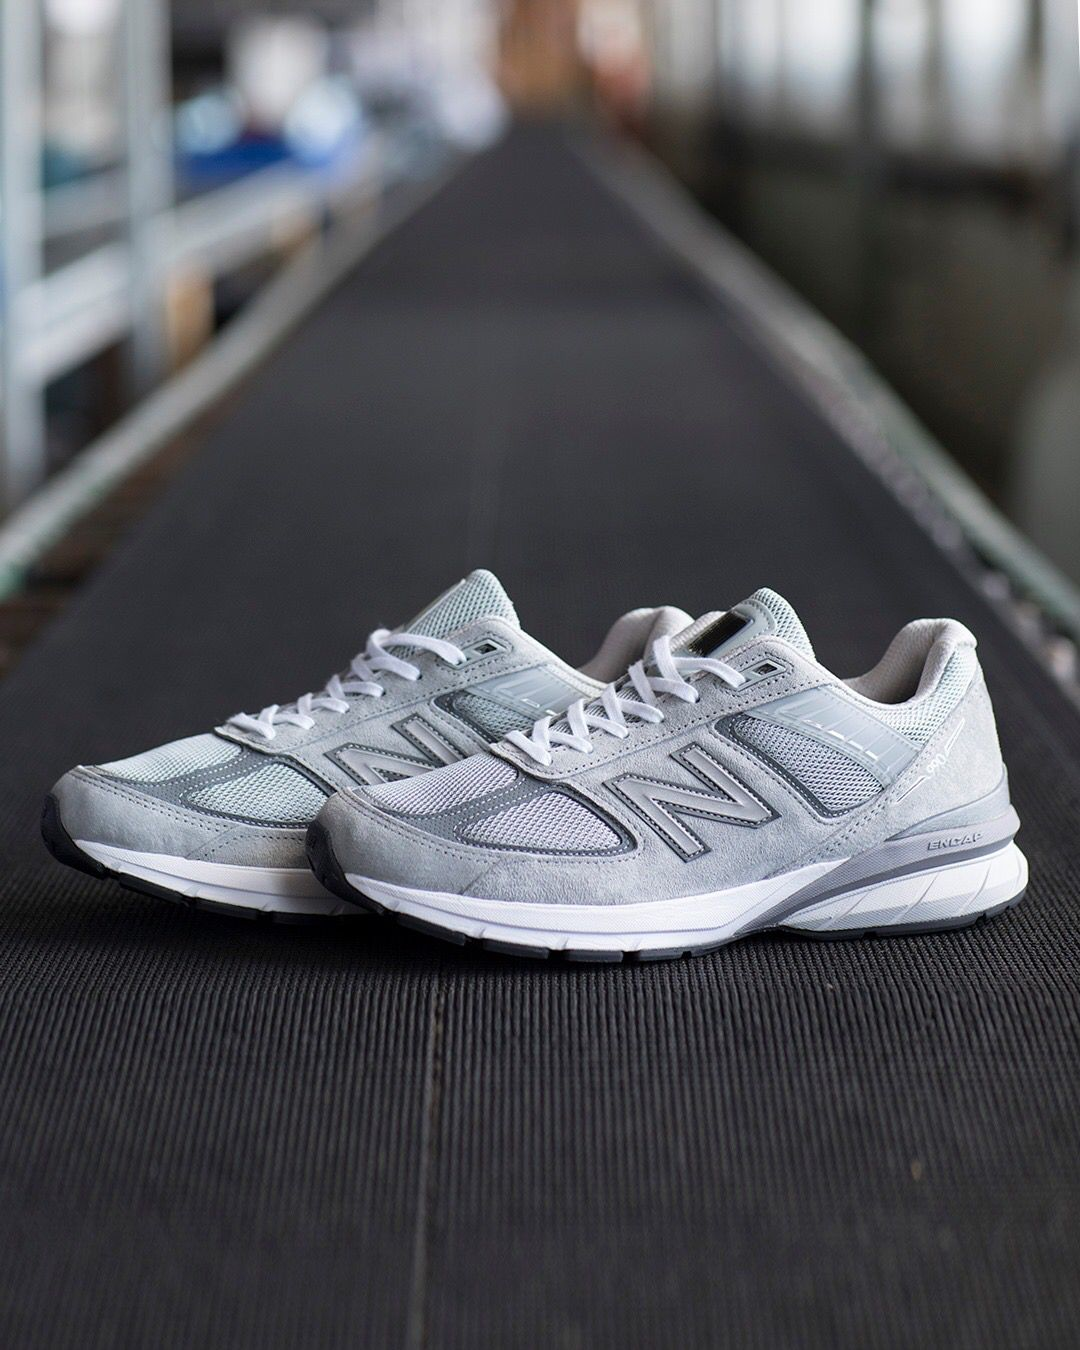 3a76a13ffc83e New Balance 990v5 | Sneakers: New Balance 990 in 2019 | New balance ...